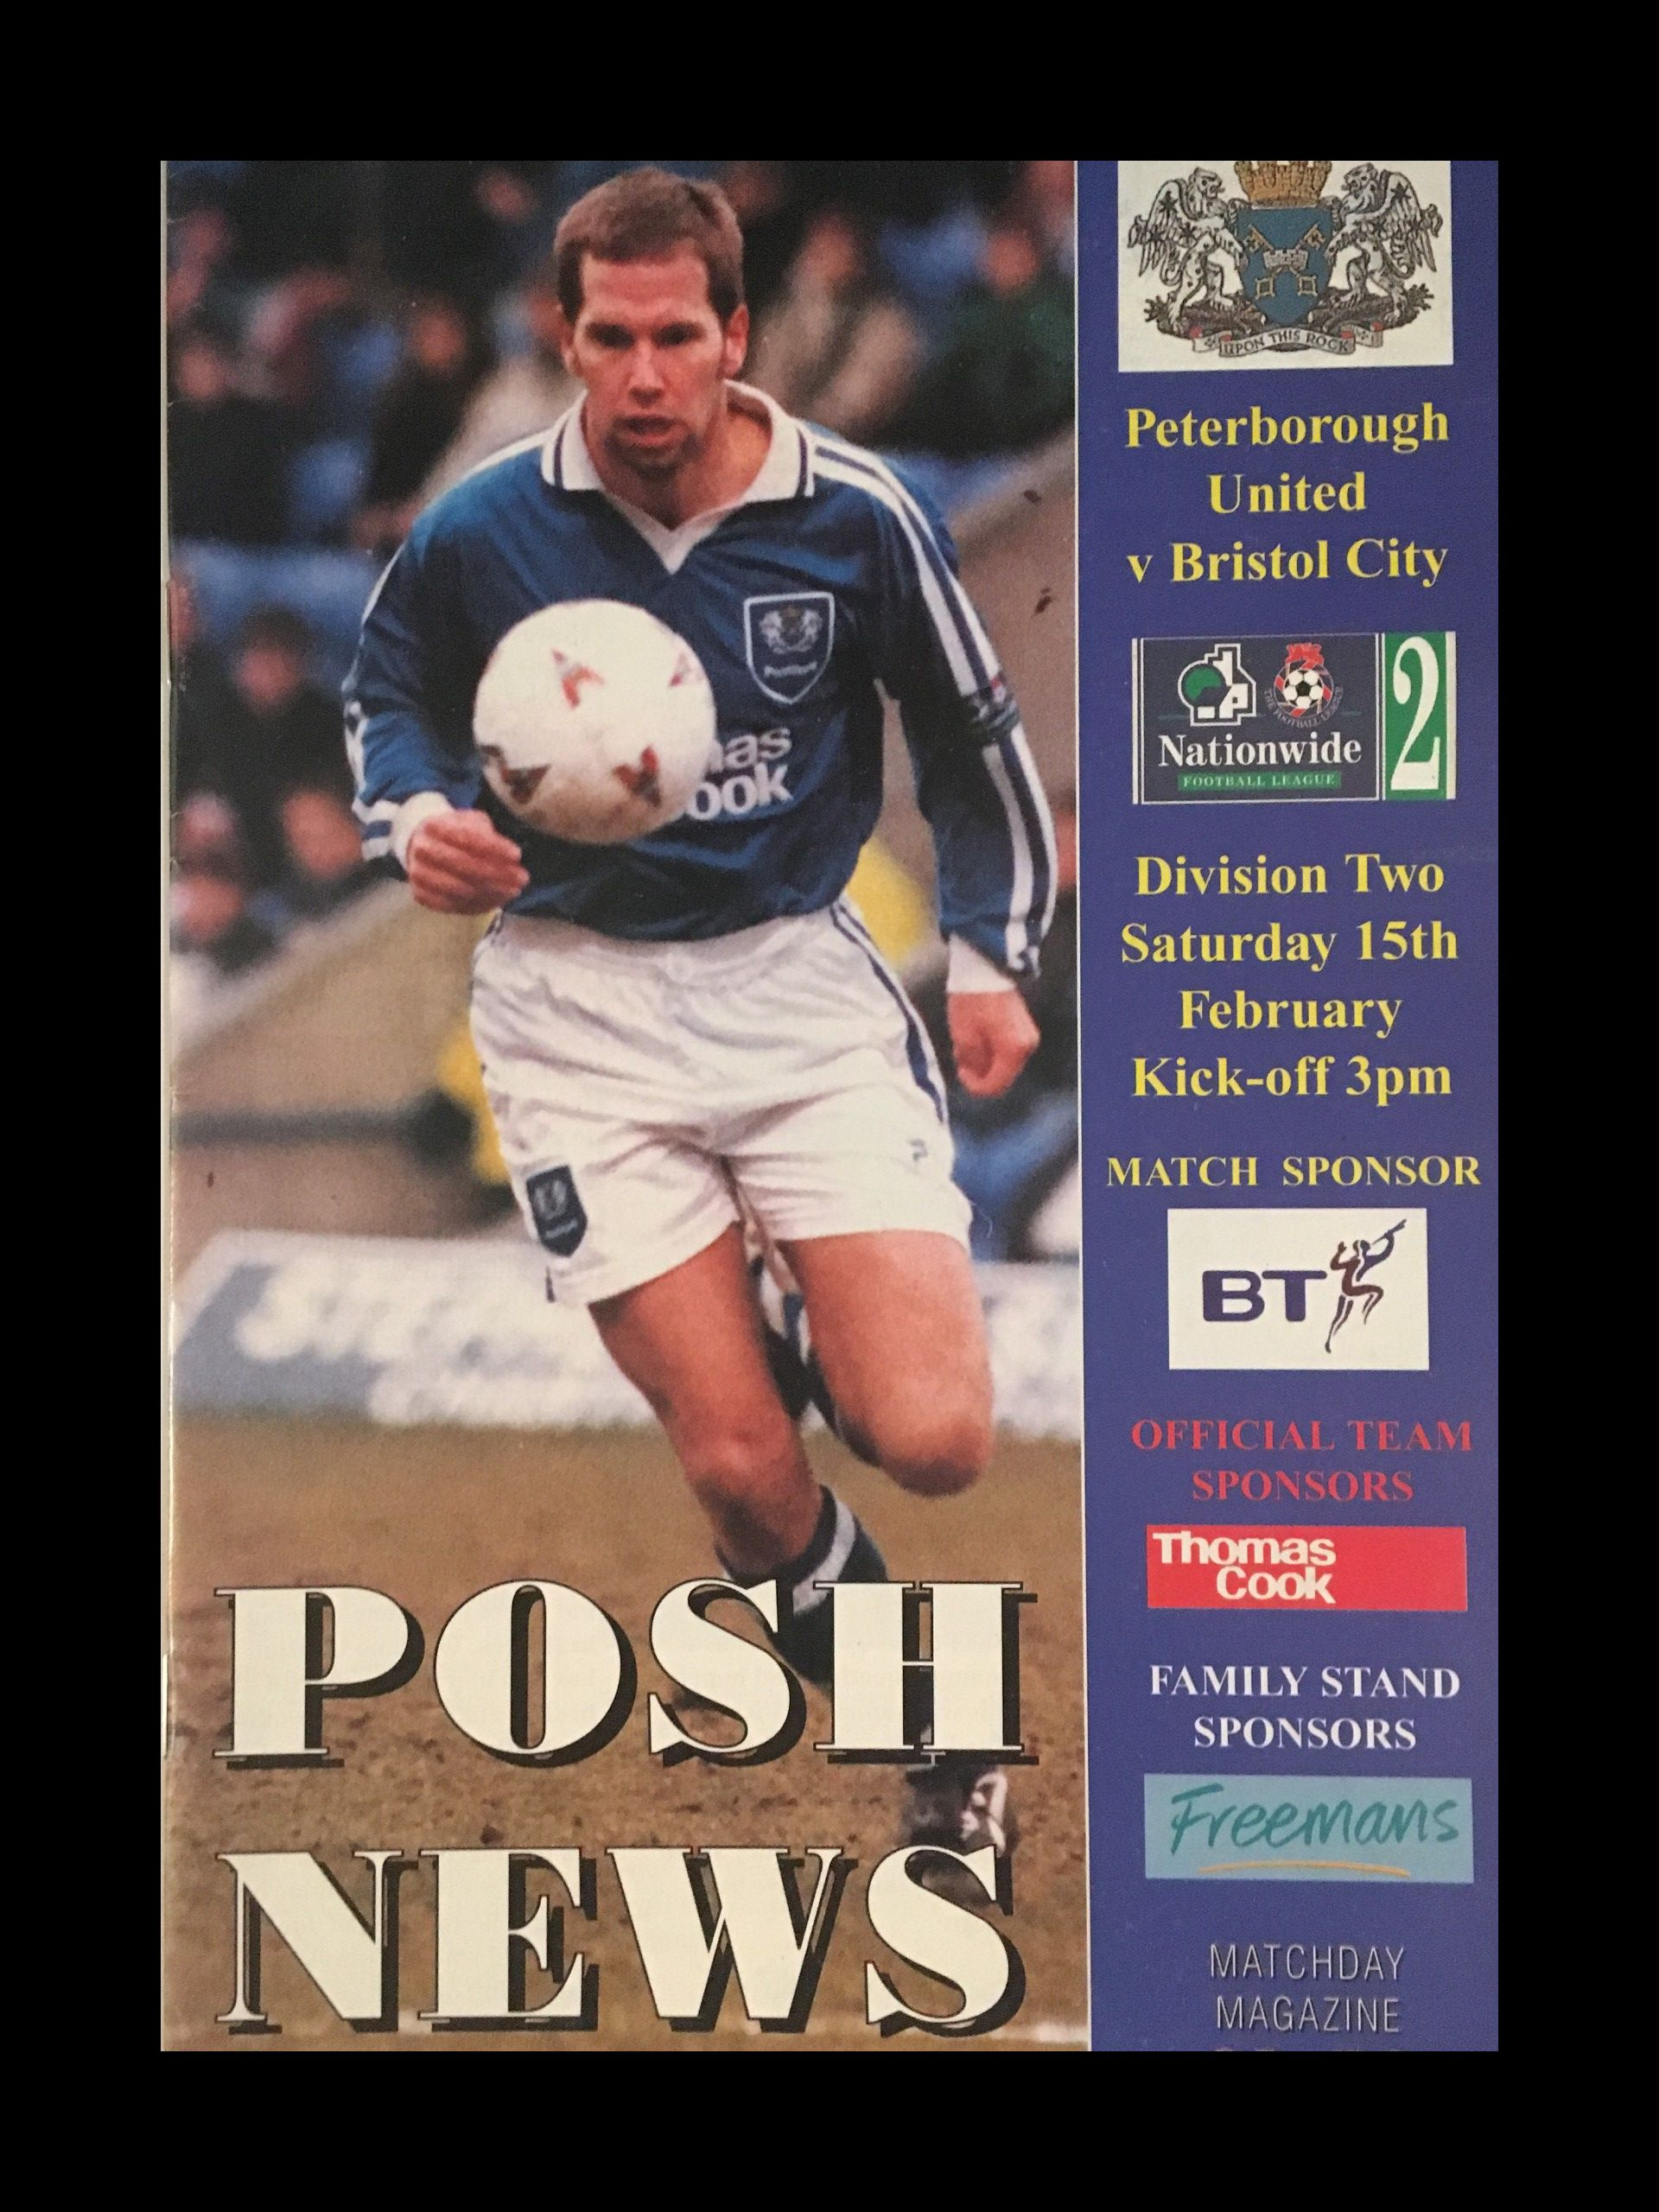 Peterborough United v Bristol City 15-02-1997 Programme